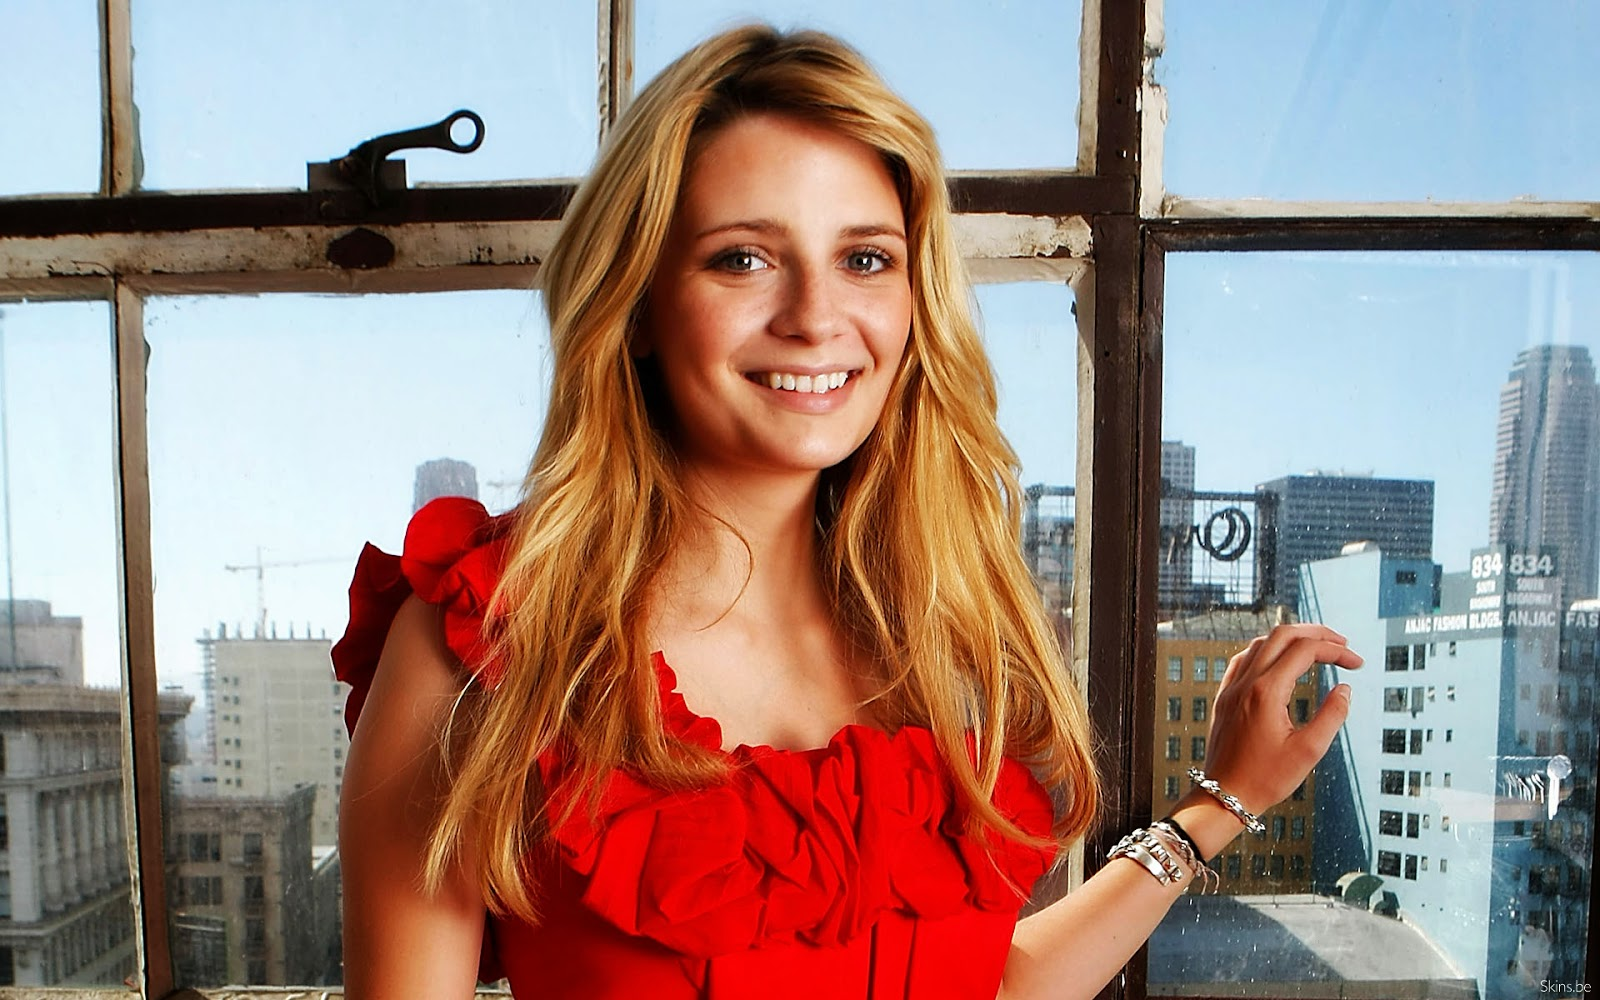 Tits Mischa Barton (born 1986 (naturalized American citizen) naked (64 images) Tits, iCloud, butt